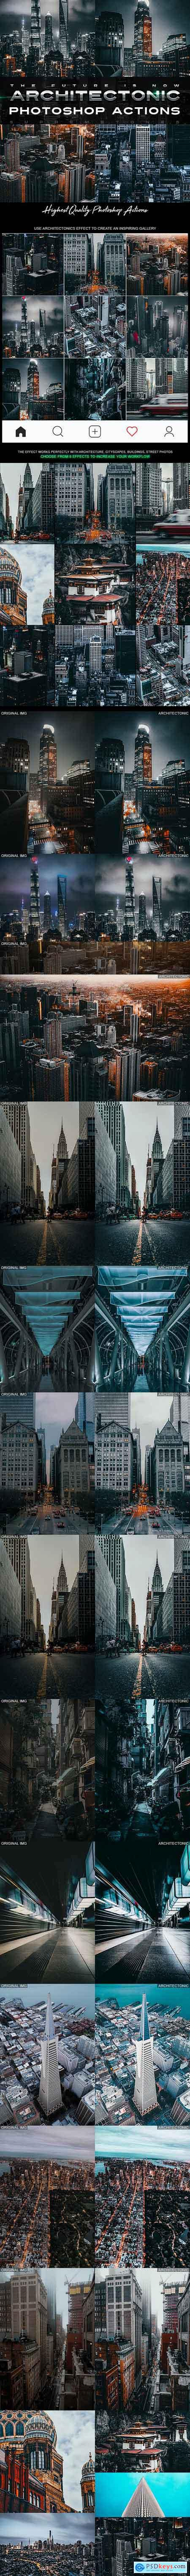 Architectonic Photoshop Actions 24890676